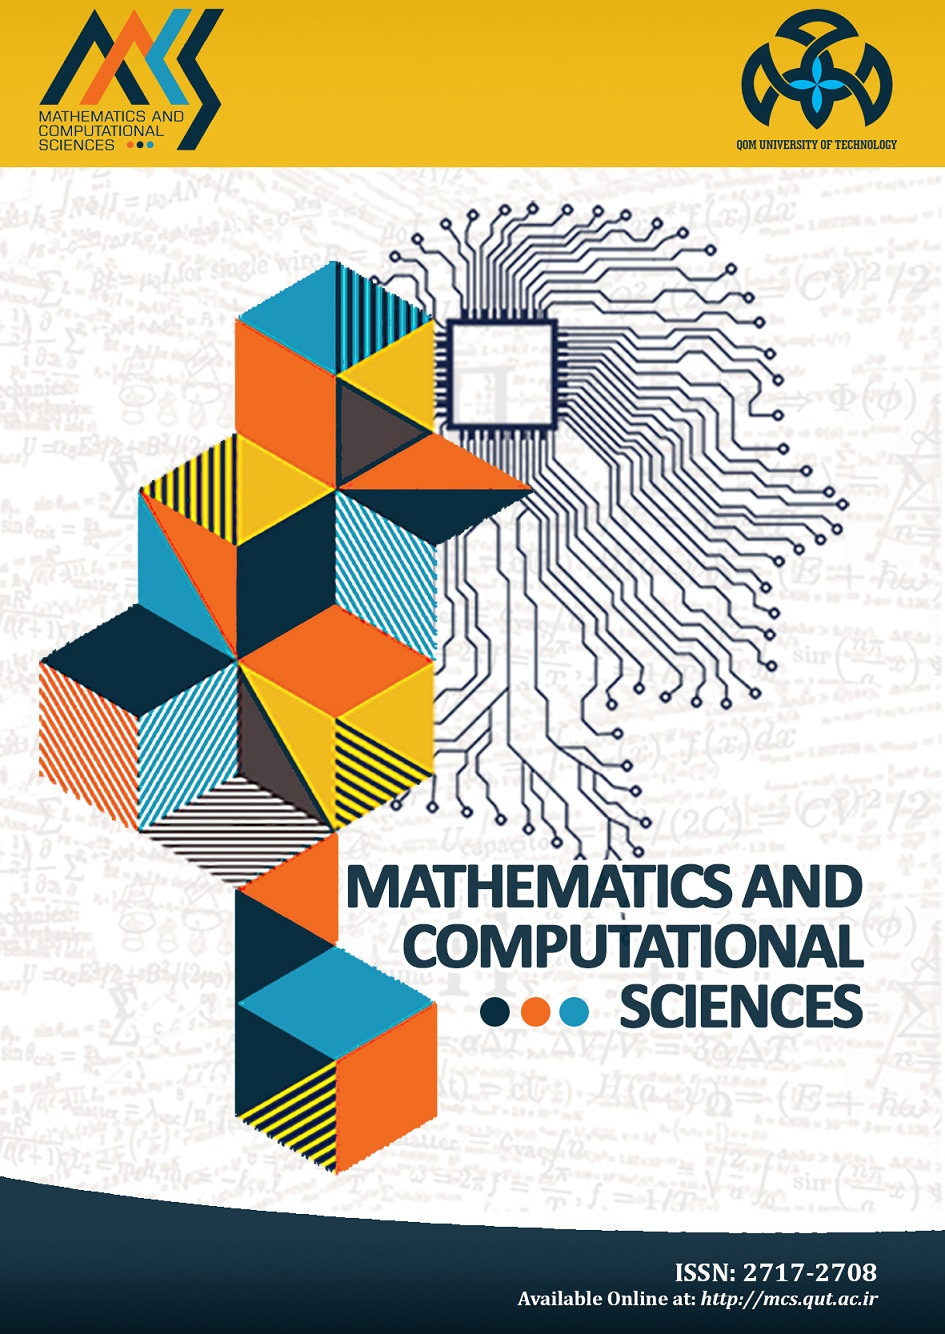 Mathematics and Computational Sciences